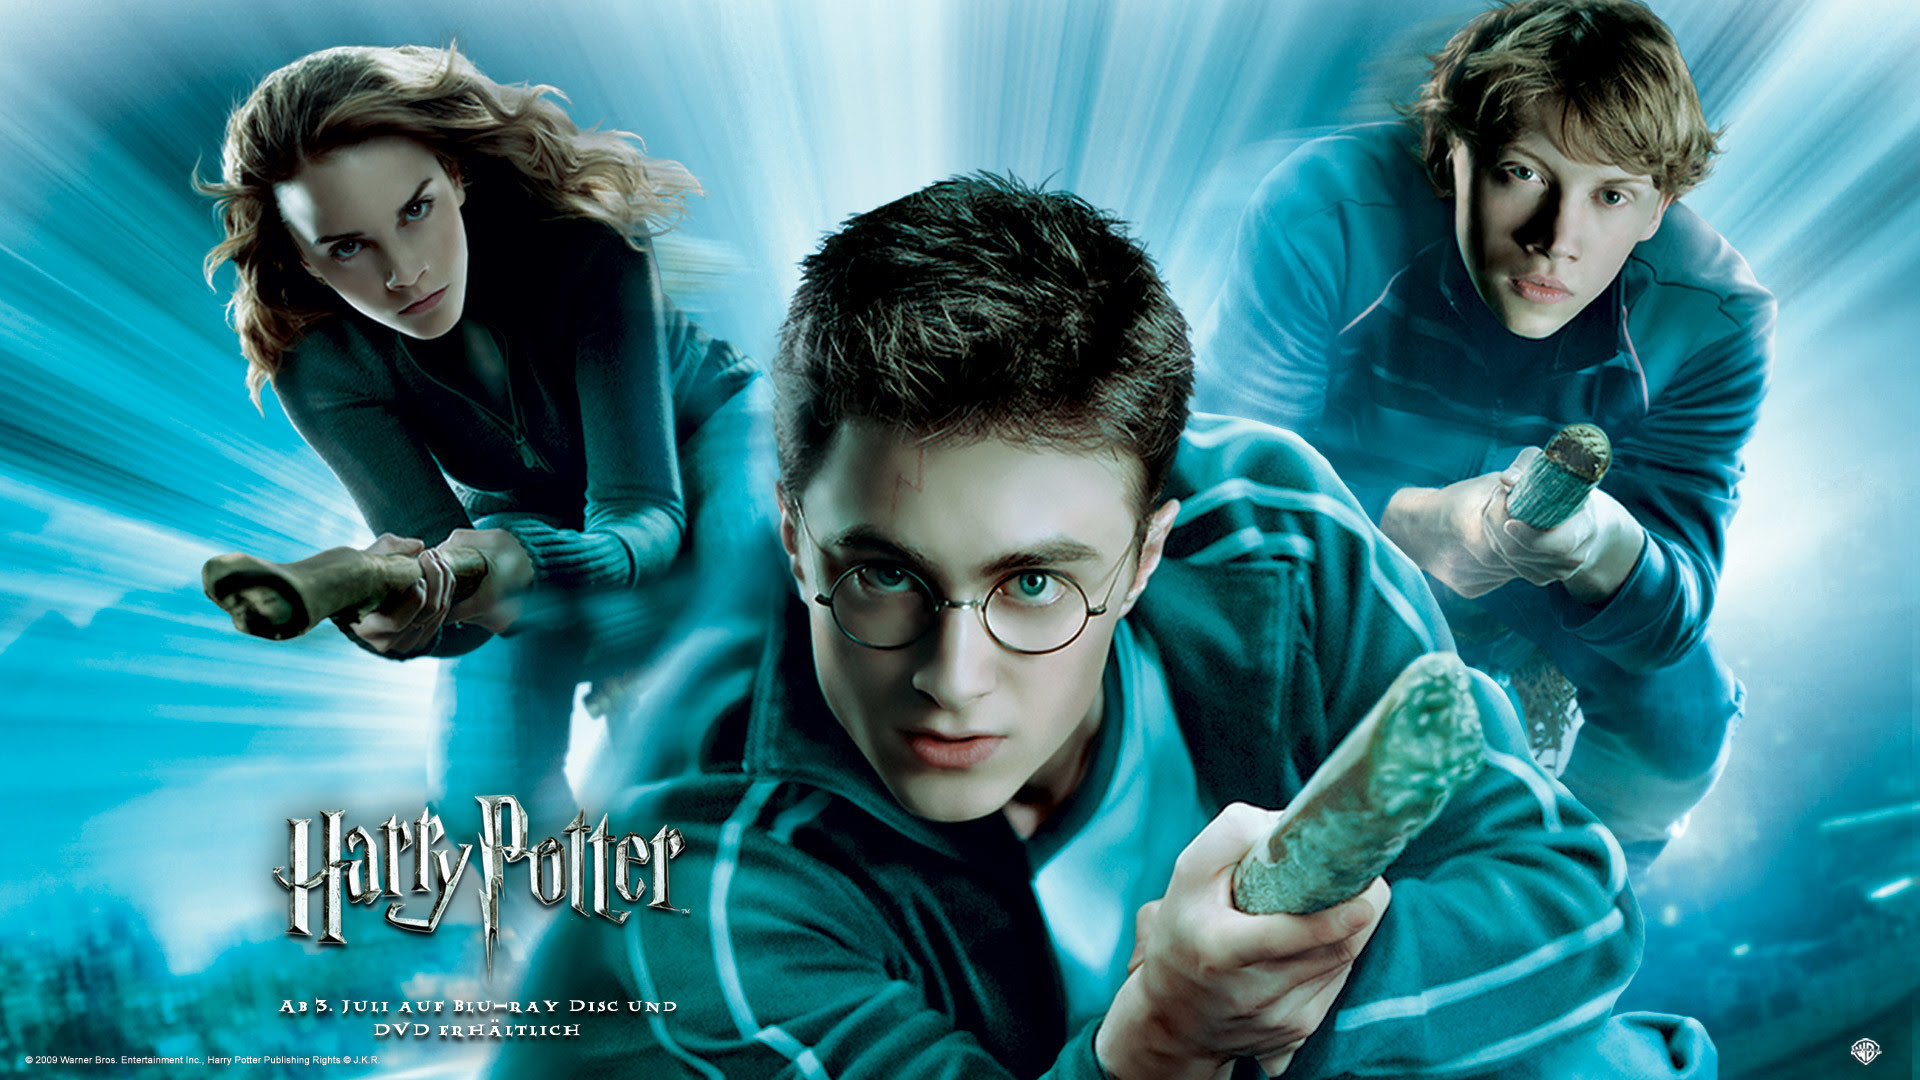 Harry Potter Wallpaper For Desktop 72 Images